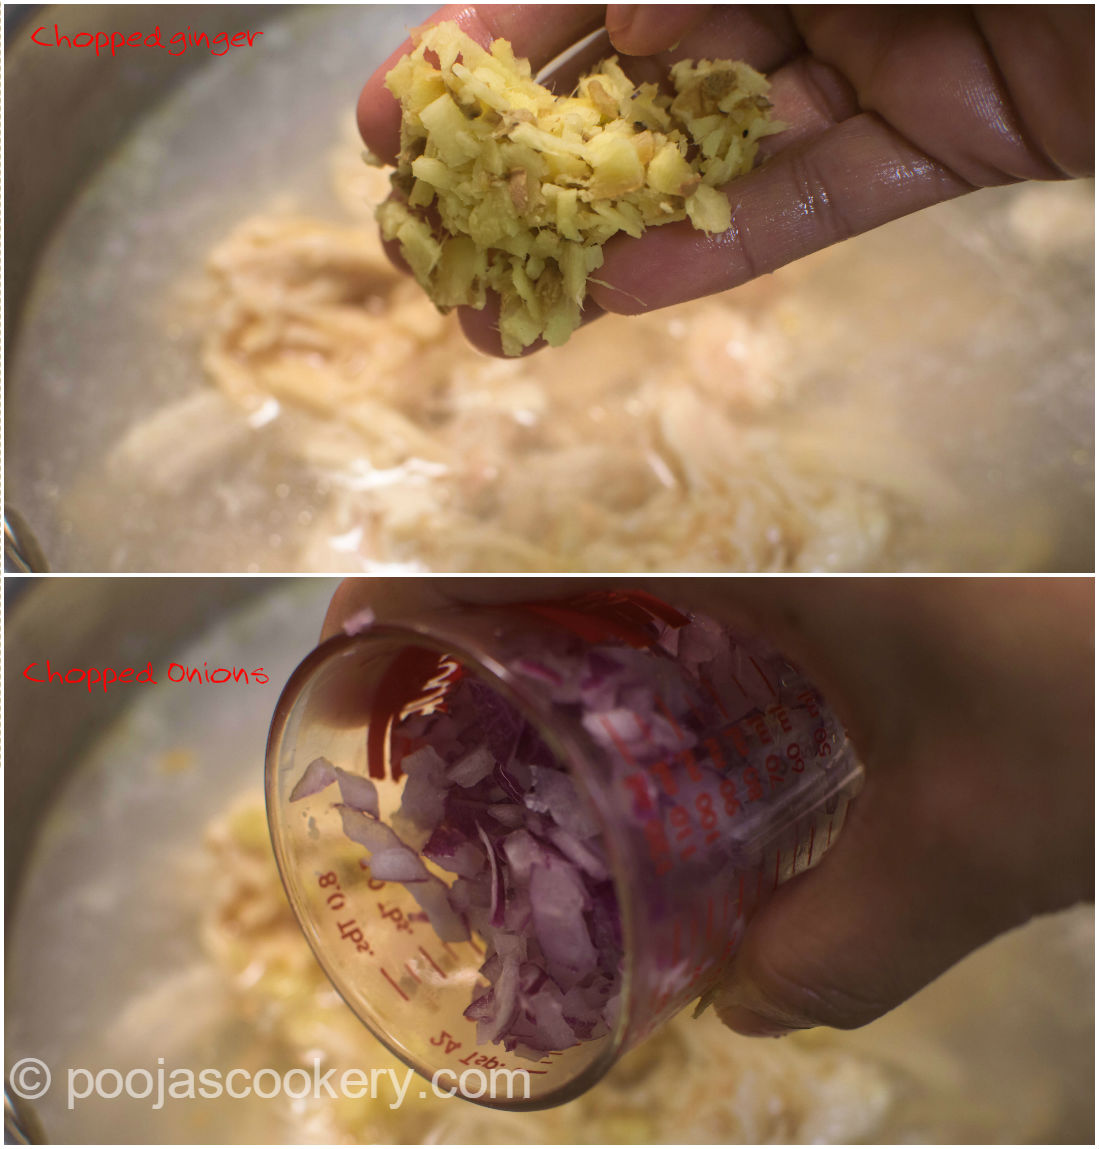 Chopped ginger and chopped onions| poojascookery.com